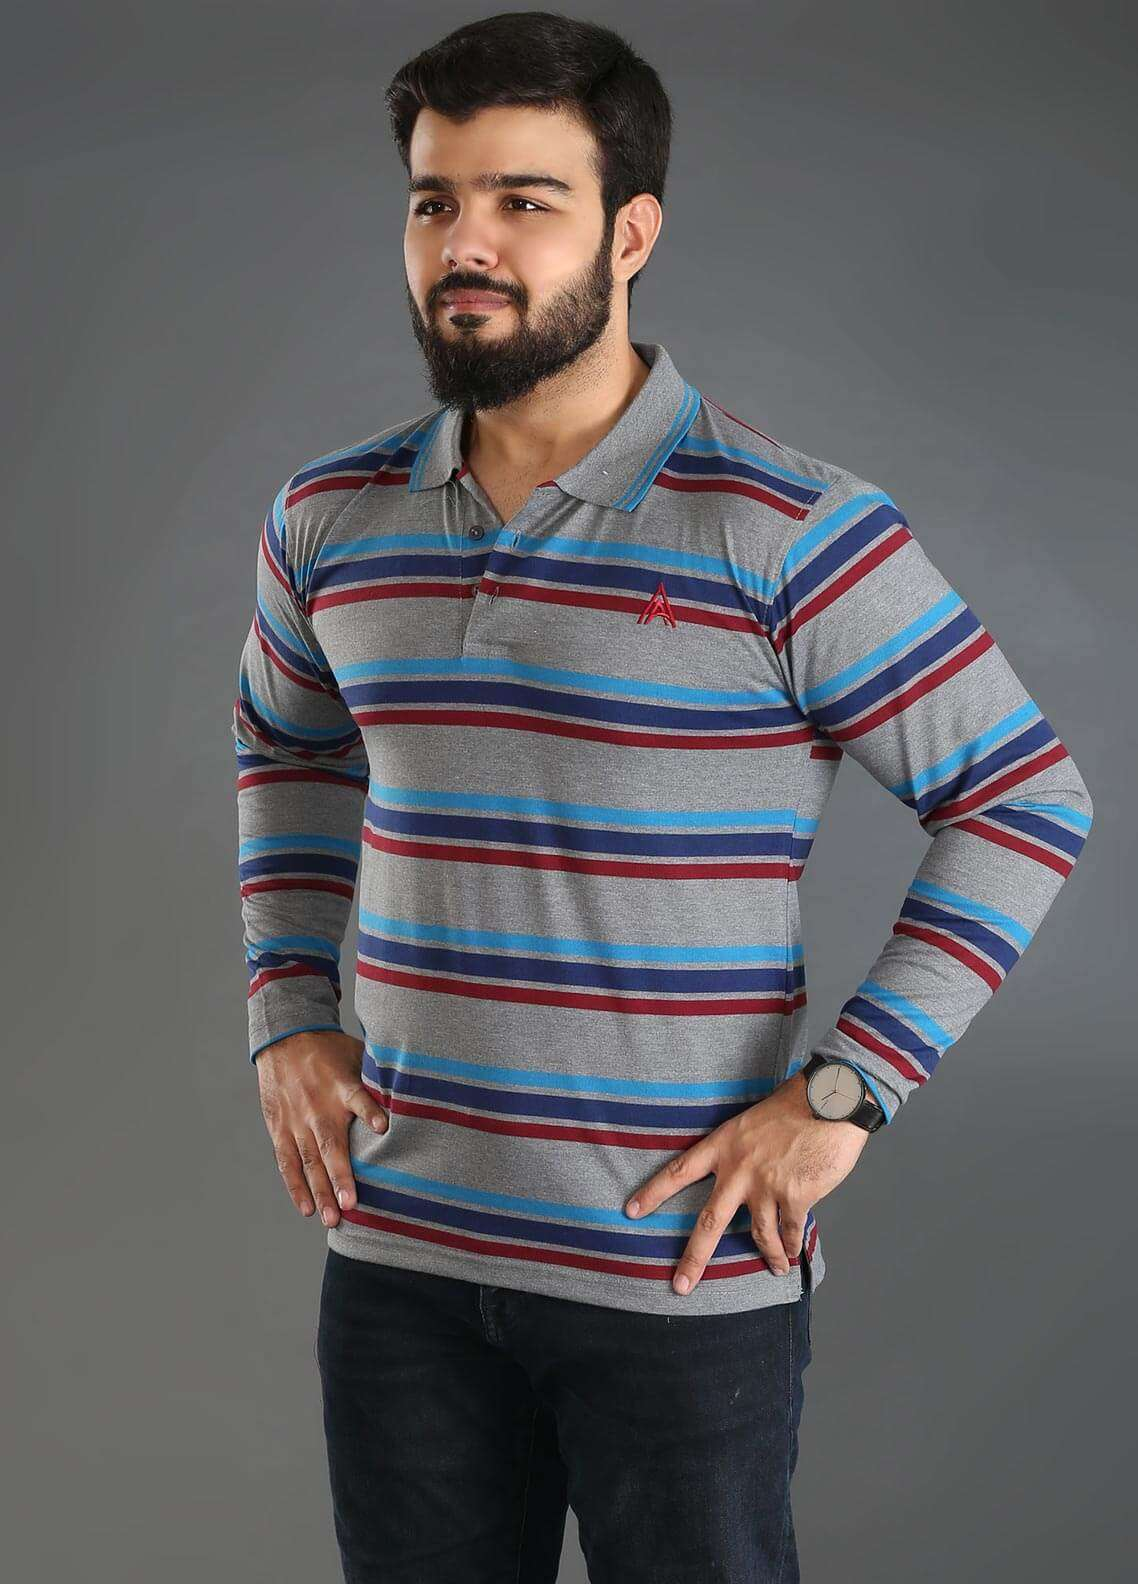 Anchor Jersey Polo T-Shirts for Men - Multi A-223